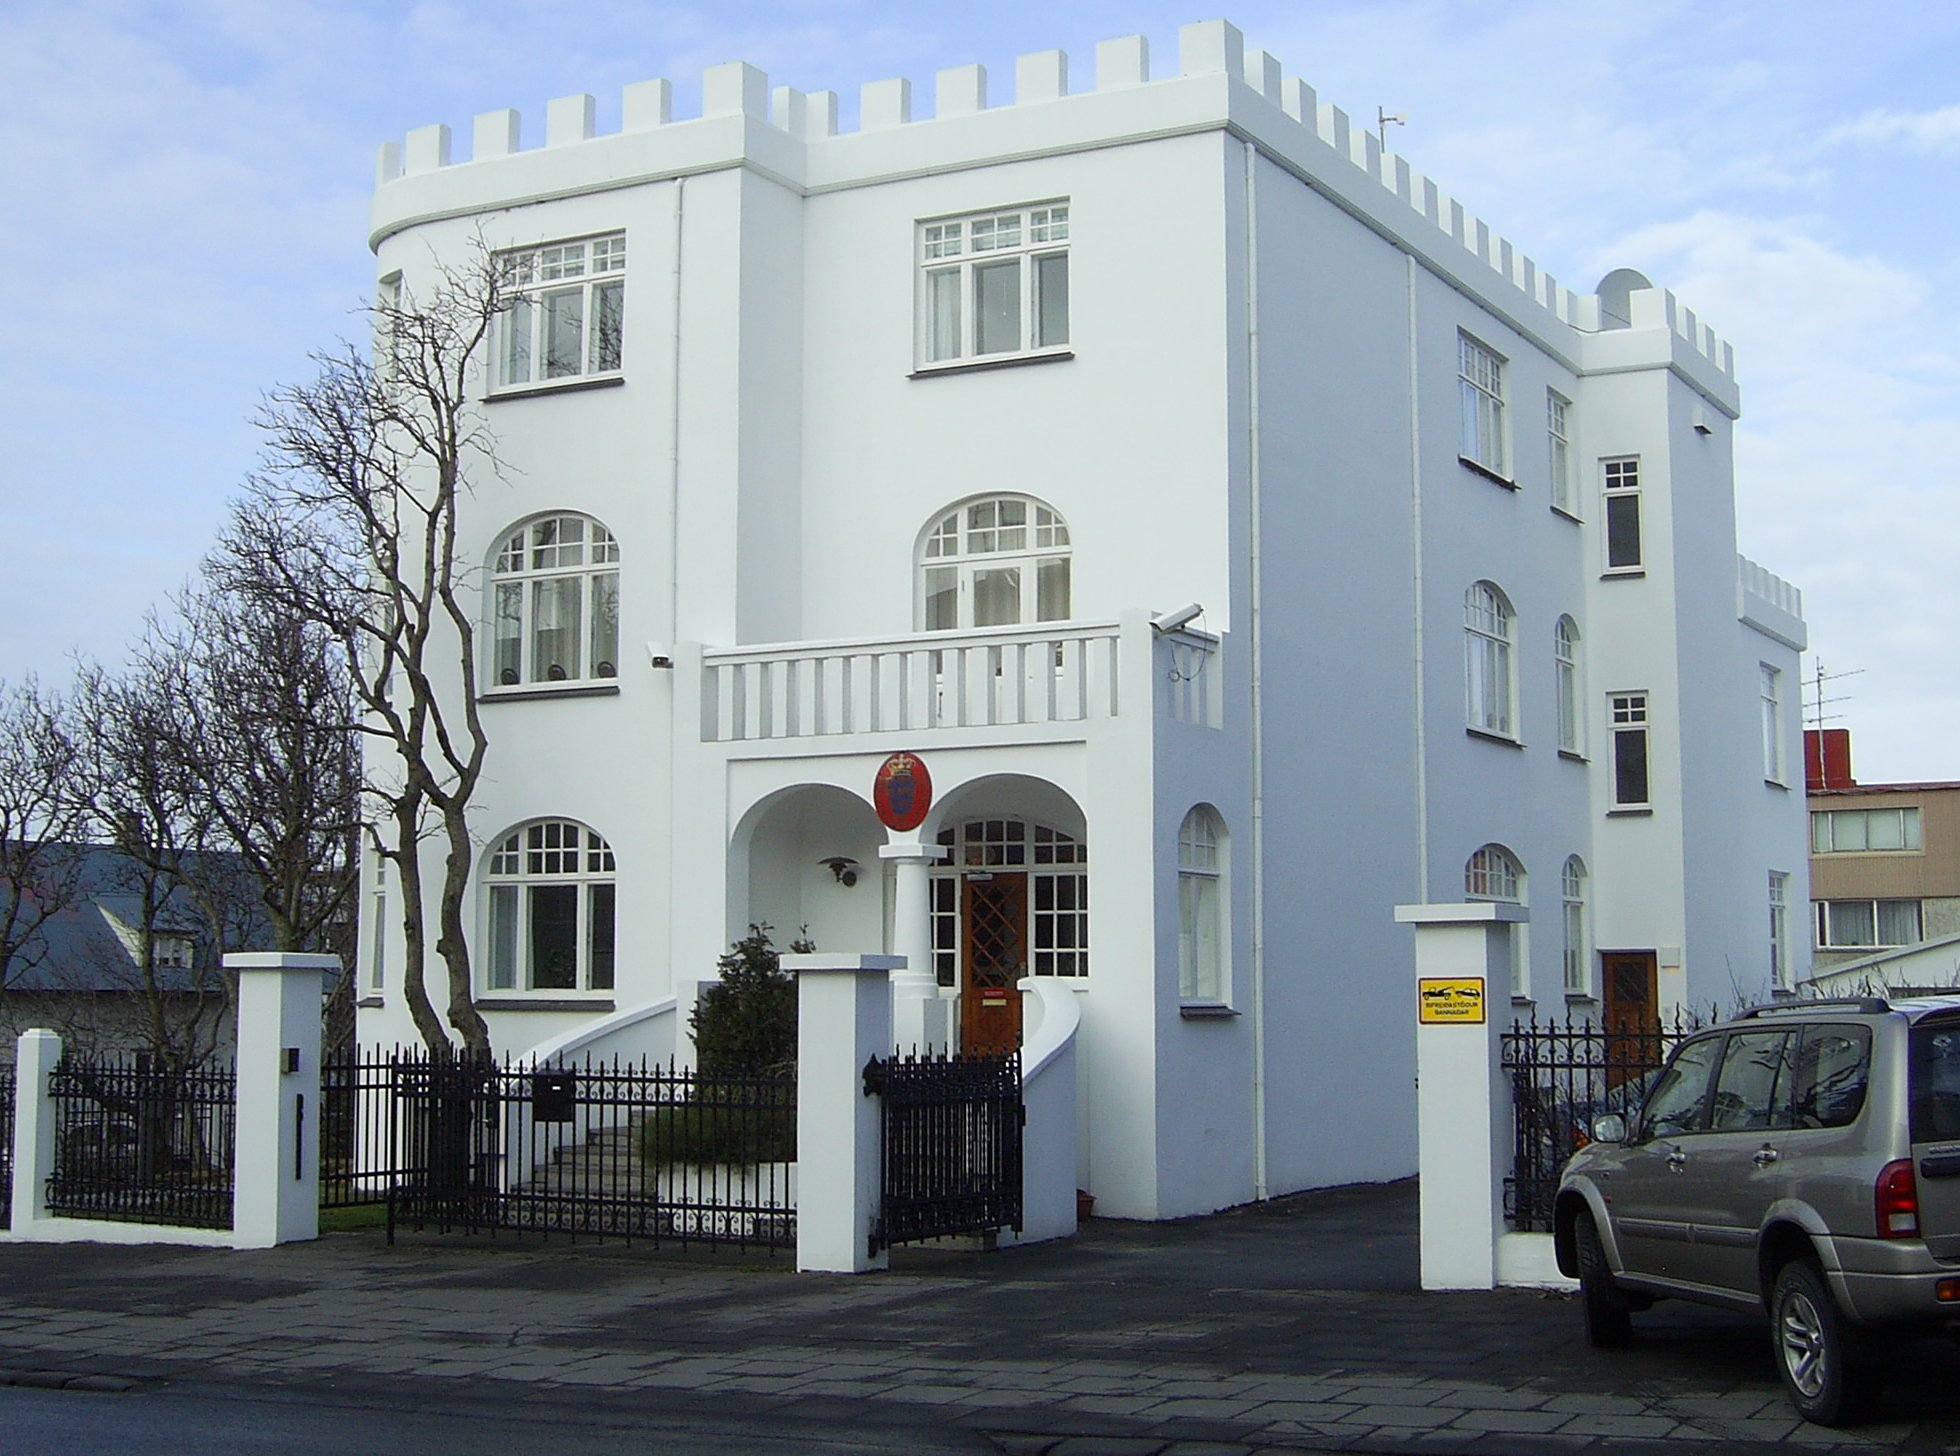 http://upload.wikimedia.org/wikipedia/commons/6/60/Iceland-Reykjavik-Danish-Embassy-1.jpg